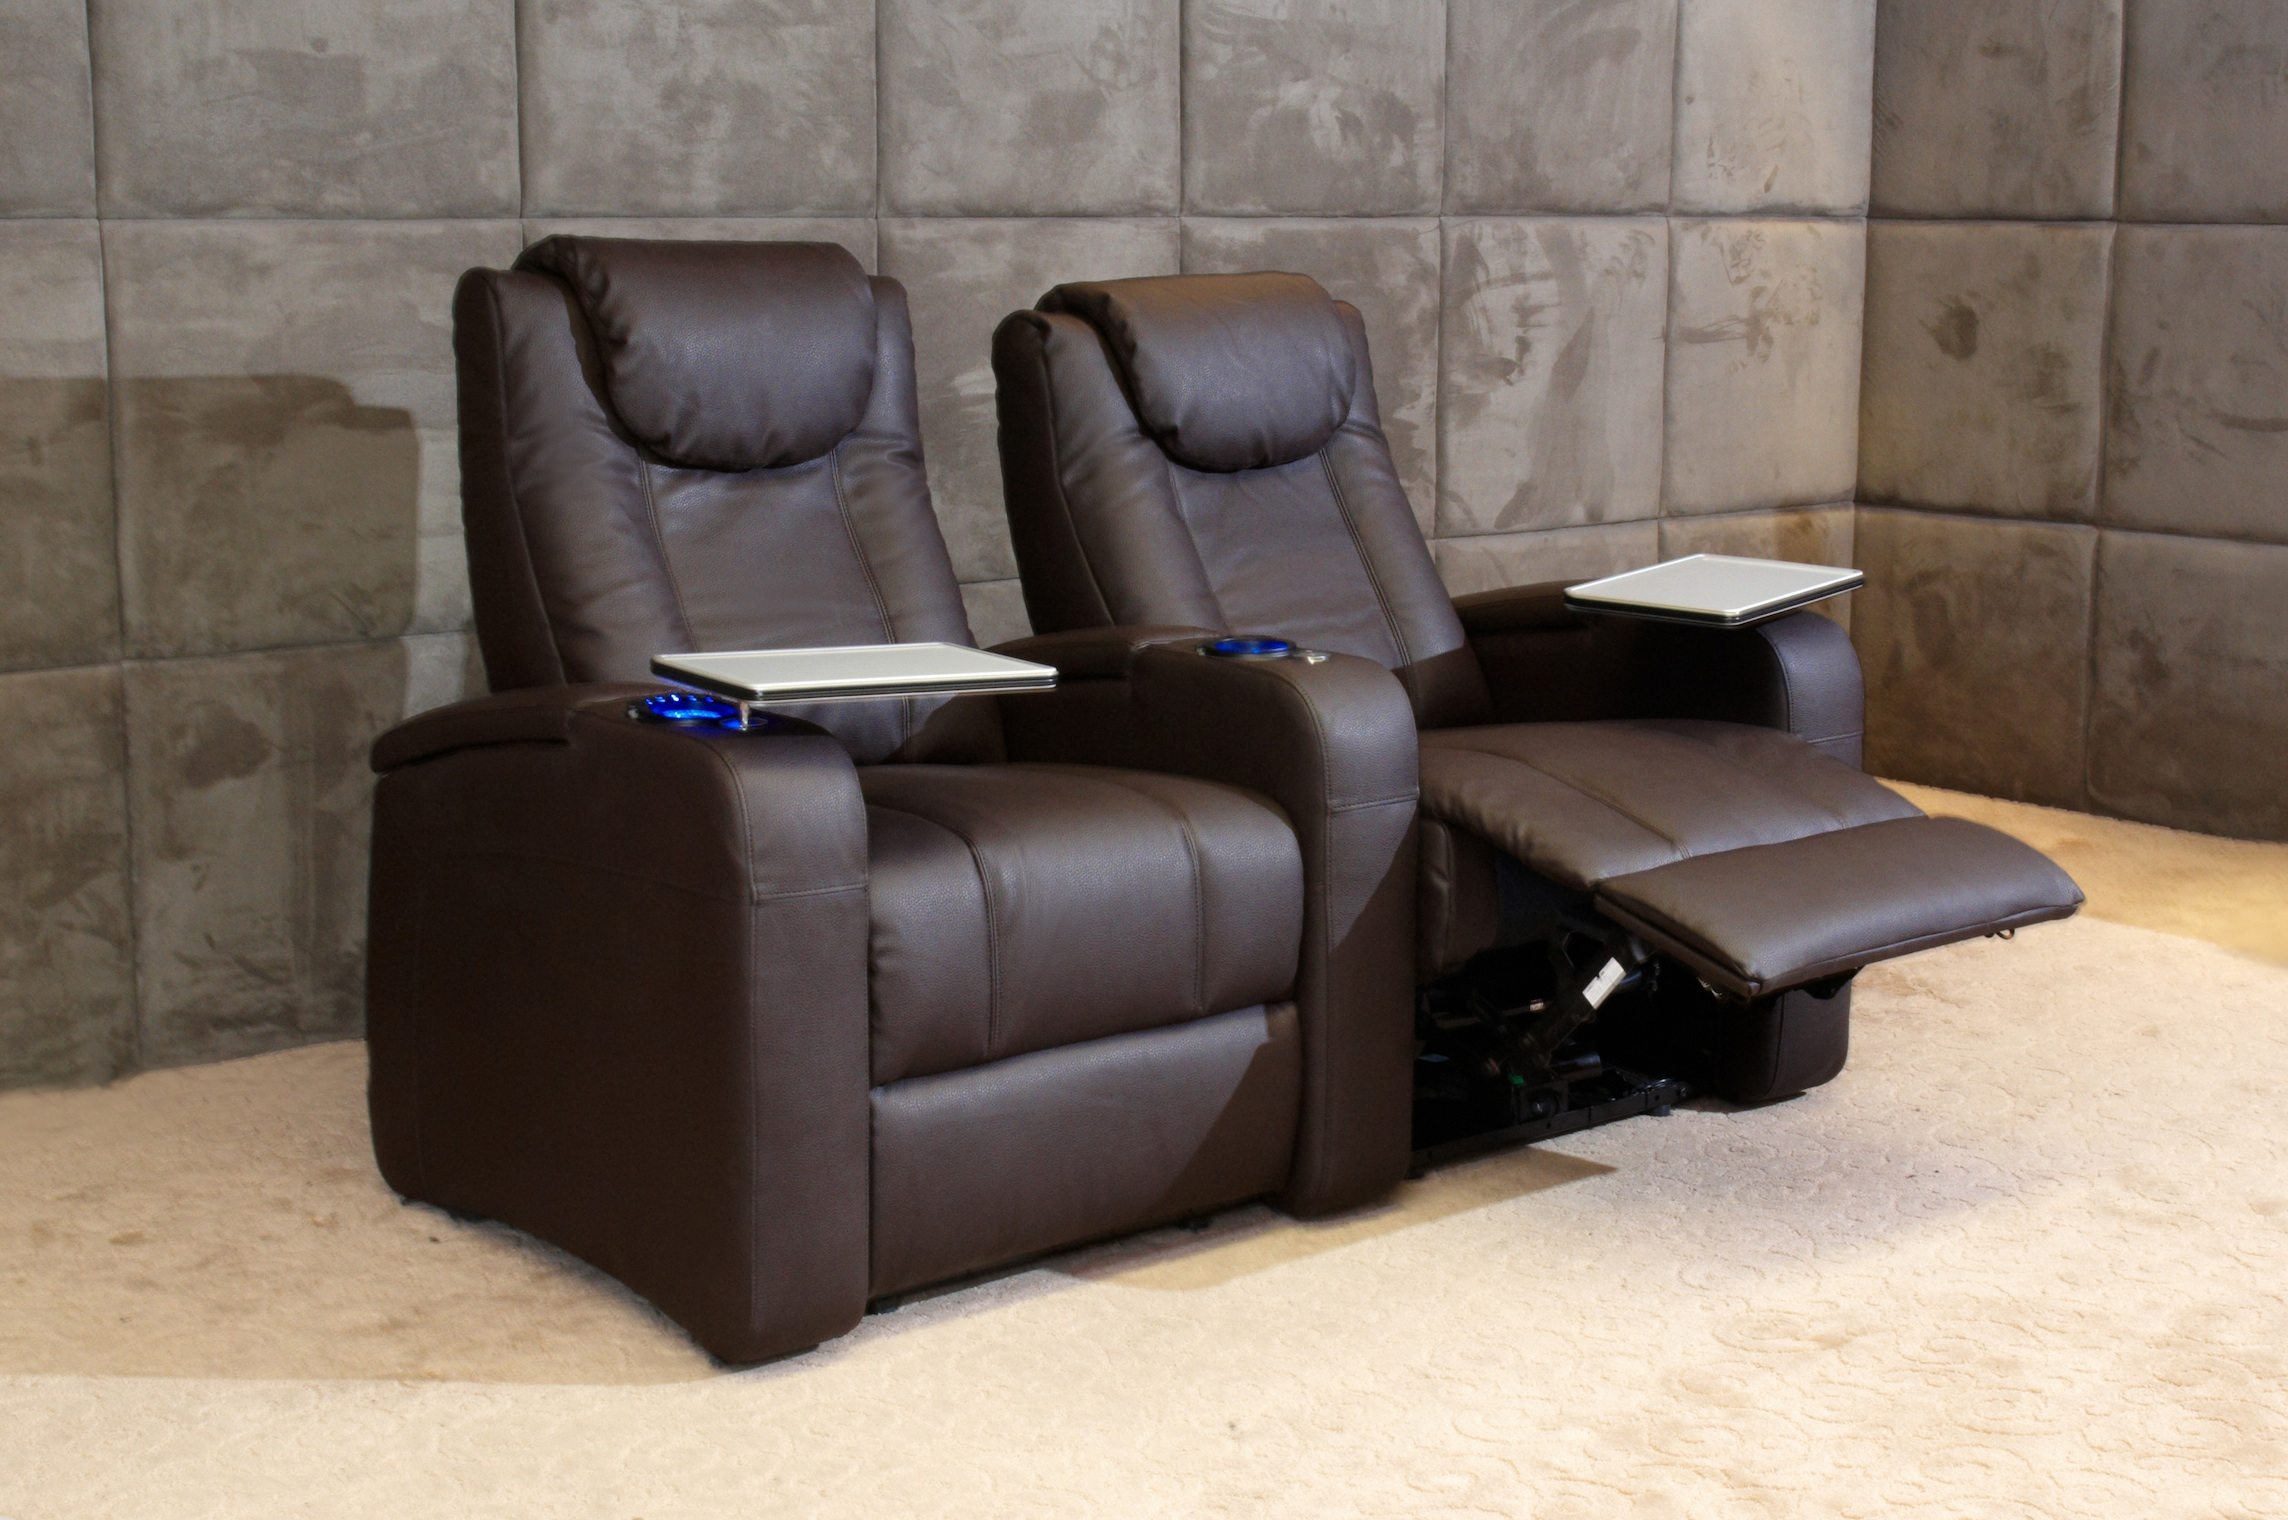 my new fusion lagoon chairs from roman page 32 avs forum home theater discussions and. Black Bedroom Furniture Sets. Home Design Ideas